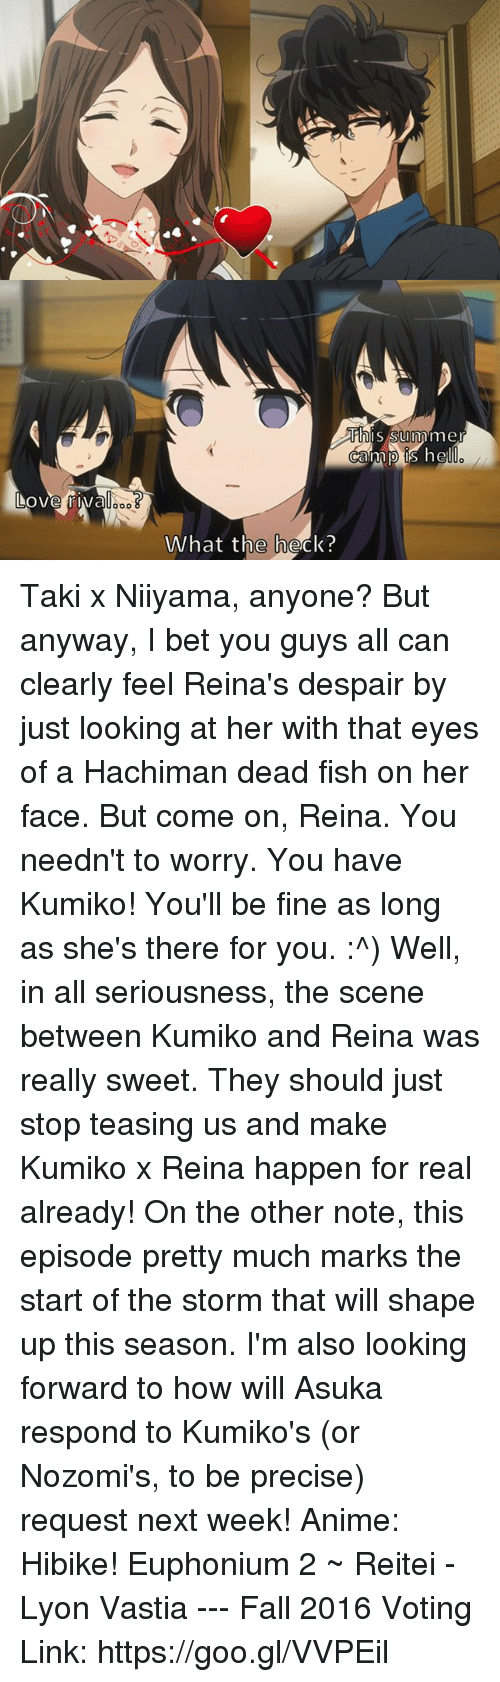 Asuka: his Summ mer  Ocammp hel  What the heck? Taki x Niiyama, anyone? But anyway, I bet you guys all can clearly feel Reina's despair by just looking at her with that eyes of a H̶a̶c̶h̶i̶m̶a̶n̶ dead fish on her face. But come on, Reina. You needn't to worry. You have Kumiko! You'll be fine as long as she's there for you. :^)  Well, in all seriousness, the scene between Kumiko and Reina was really sweet. They should just stop teasing us and make Kumiko x Reina happen for real already!  On the other note, this episode pretty much marks the start of the storm that will shape up this season. I'm also looking forward to how will Asuka respond to Kumiko's (or Nozomi's, to be precise) request next week!  Anime: Hibike! Euphonium 2  ~ Reitei - Lyon Vastia --- Fall 2016 Voting Link: https://goo.gl/VVPEil